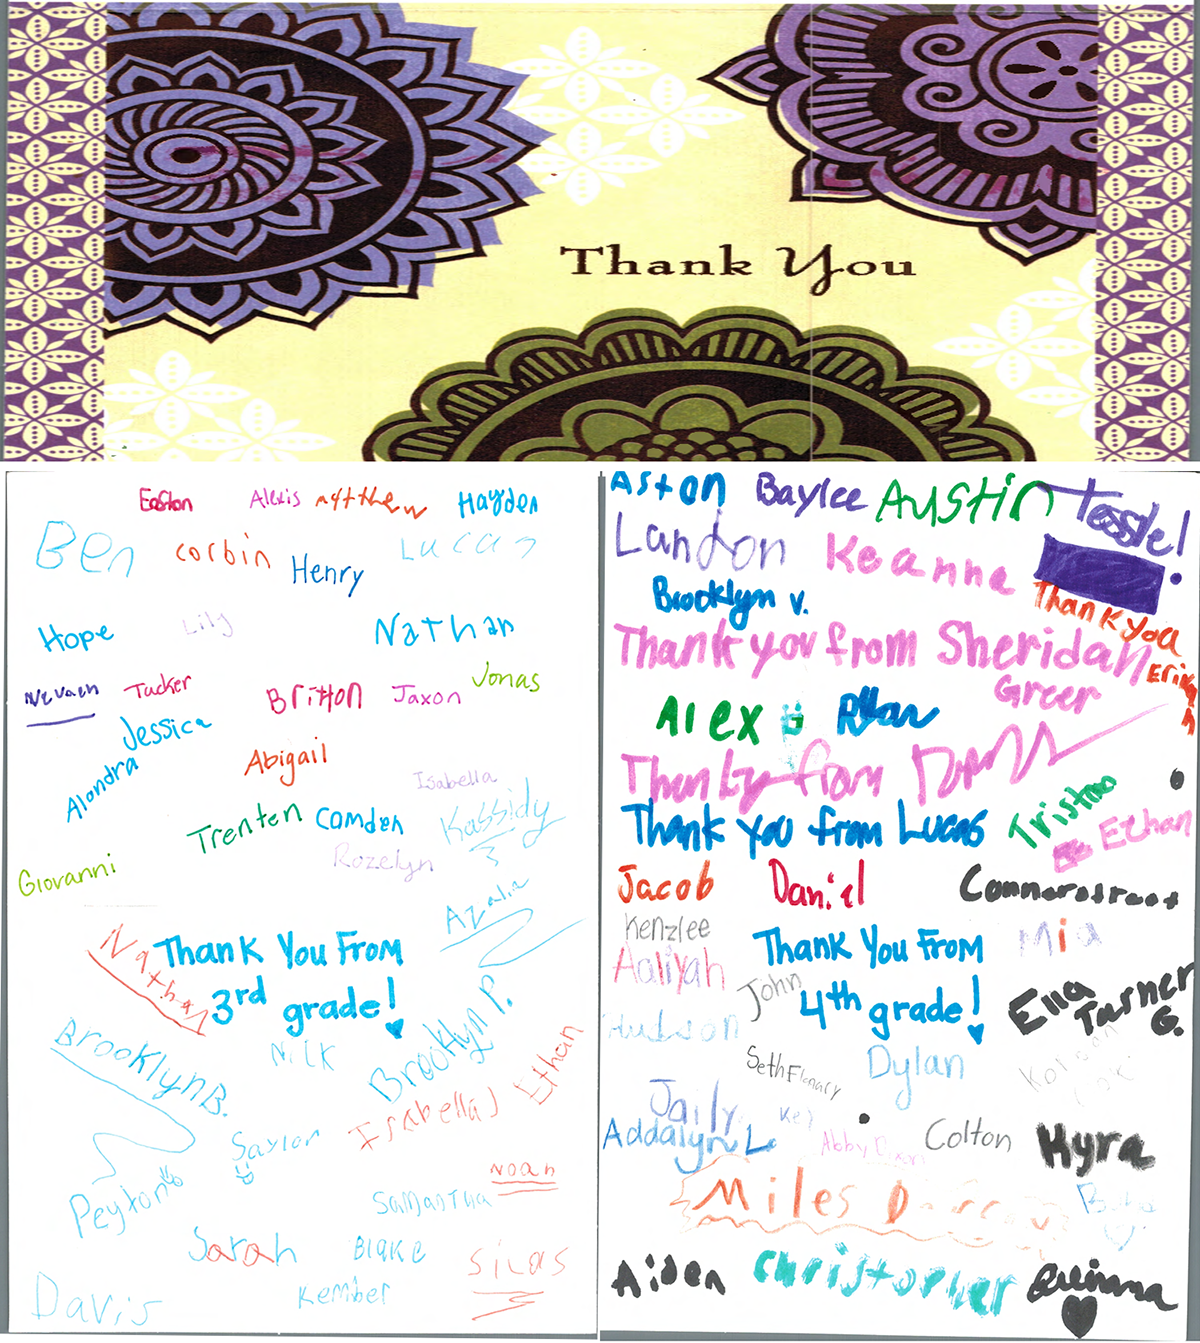 Thank you cards from Eaton Elementary School